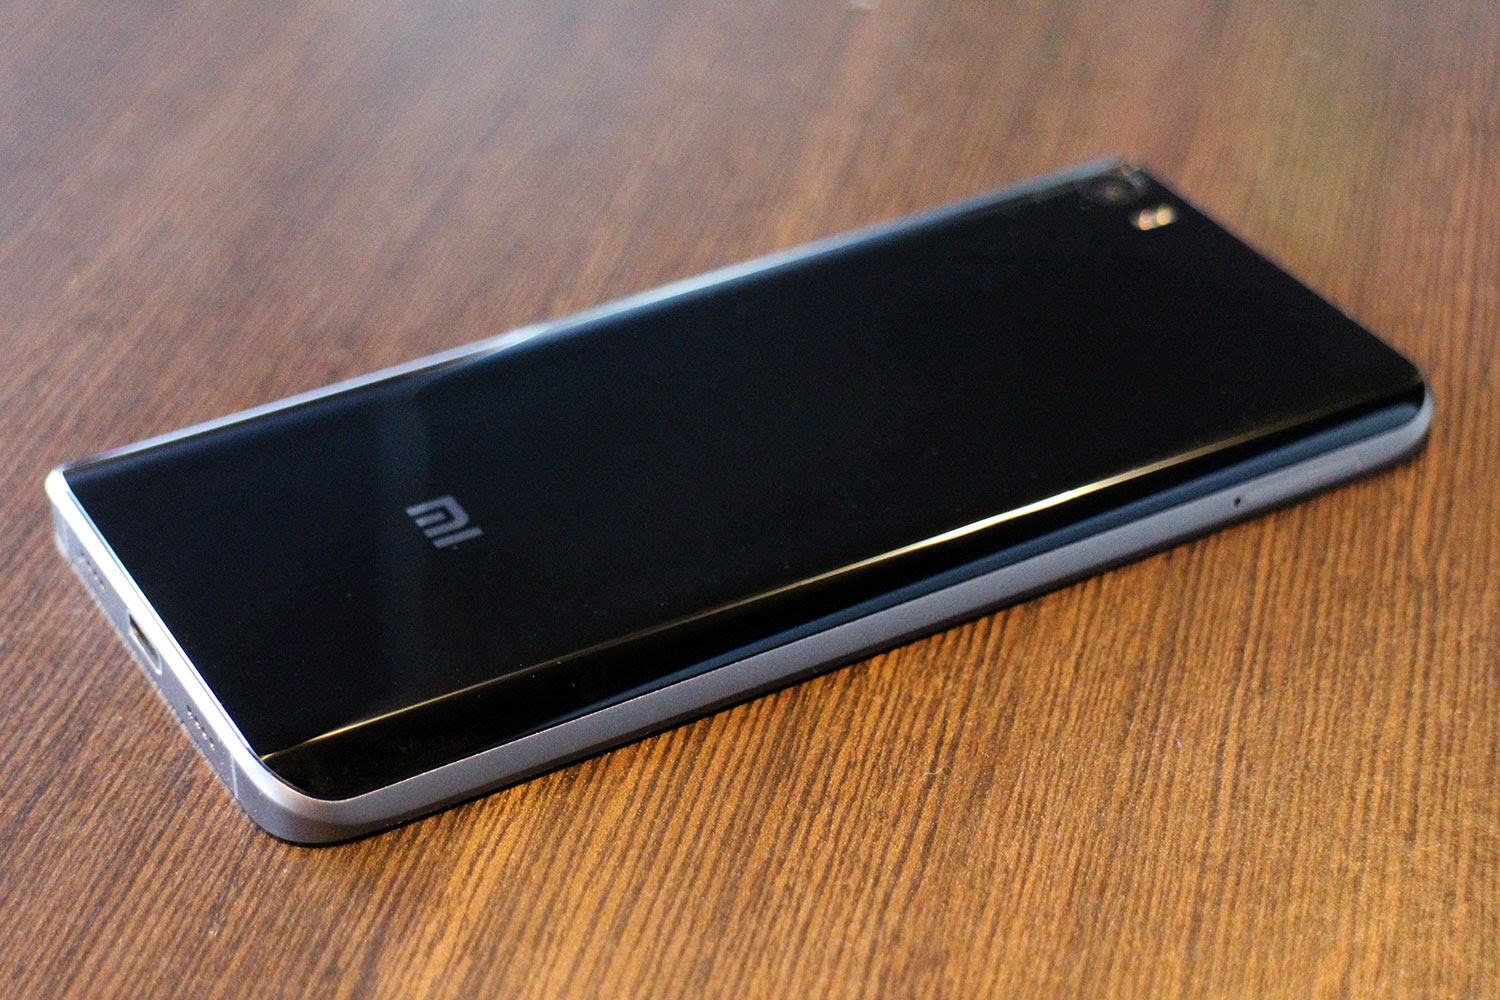 Image result for mi note 2